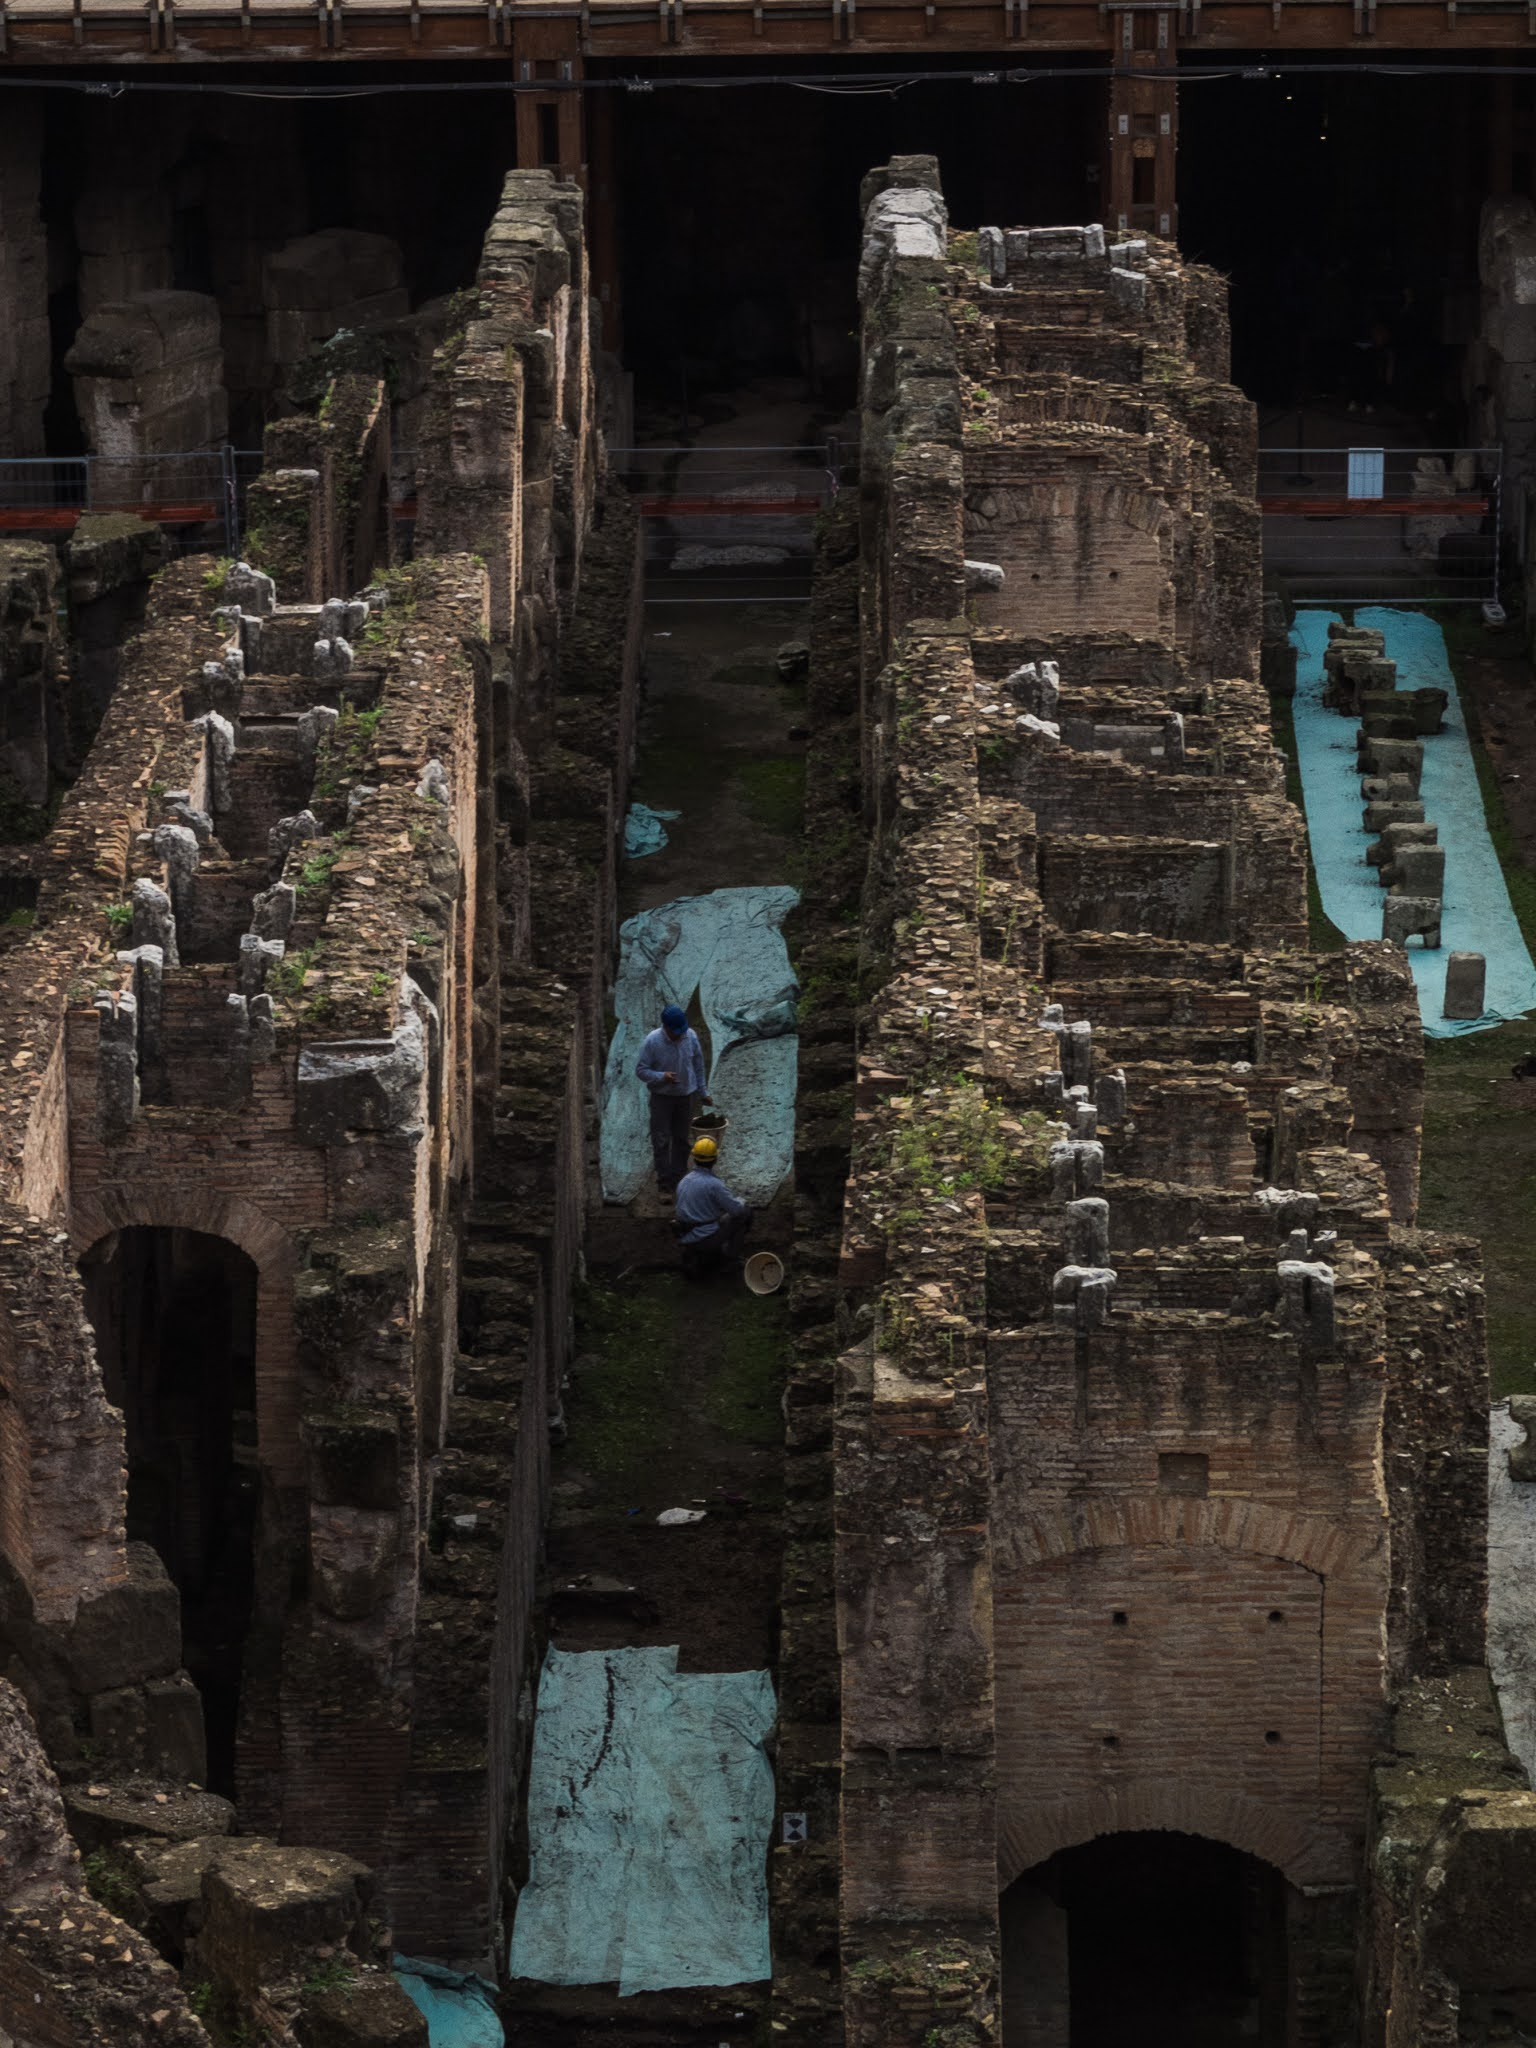 Two men excavating in the Hypogeum of the Colosseum